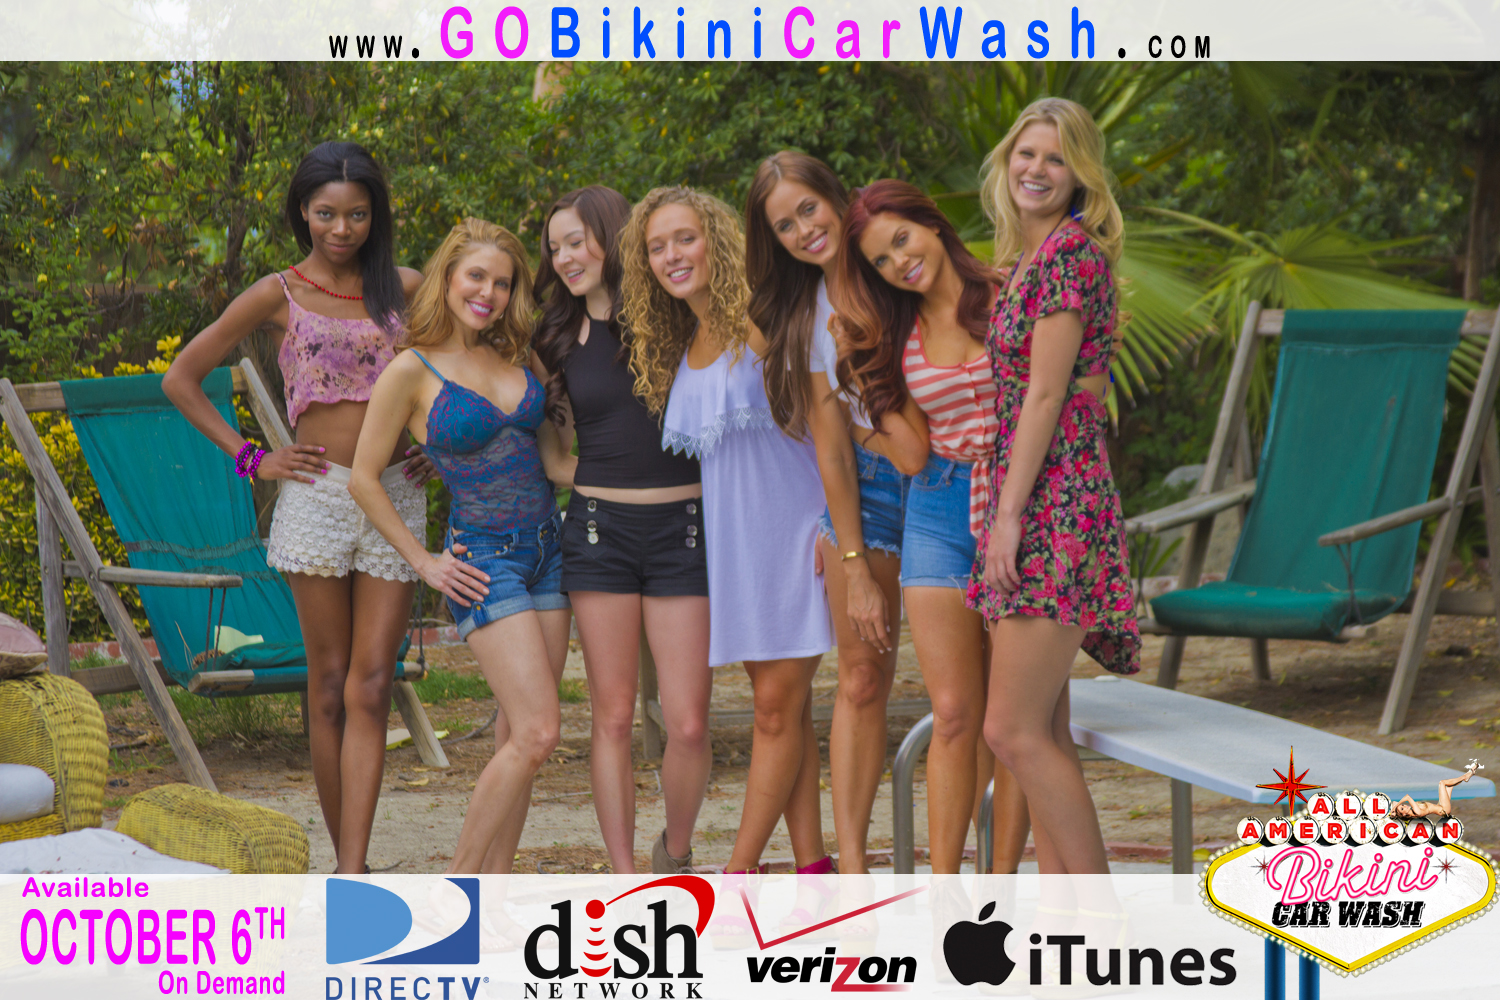 All American Bikini Car Wash Amazon all american bikini car wash, 2015 hottest comedy, has